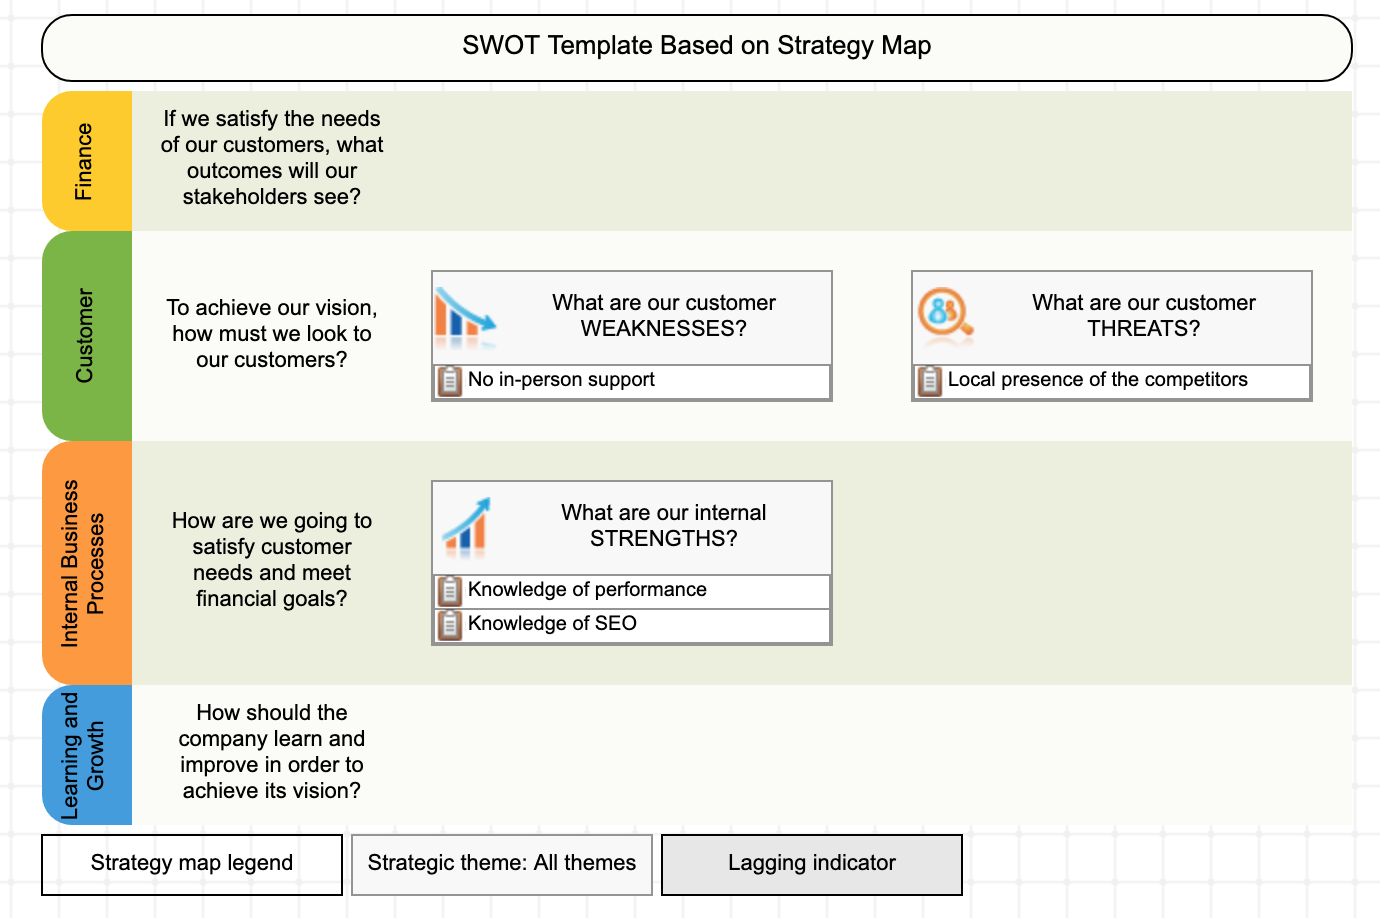 Example of using SWOT+S template